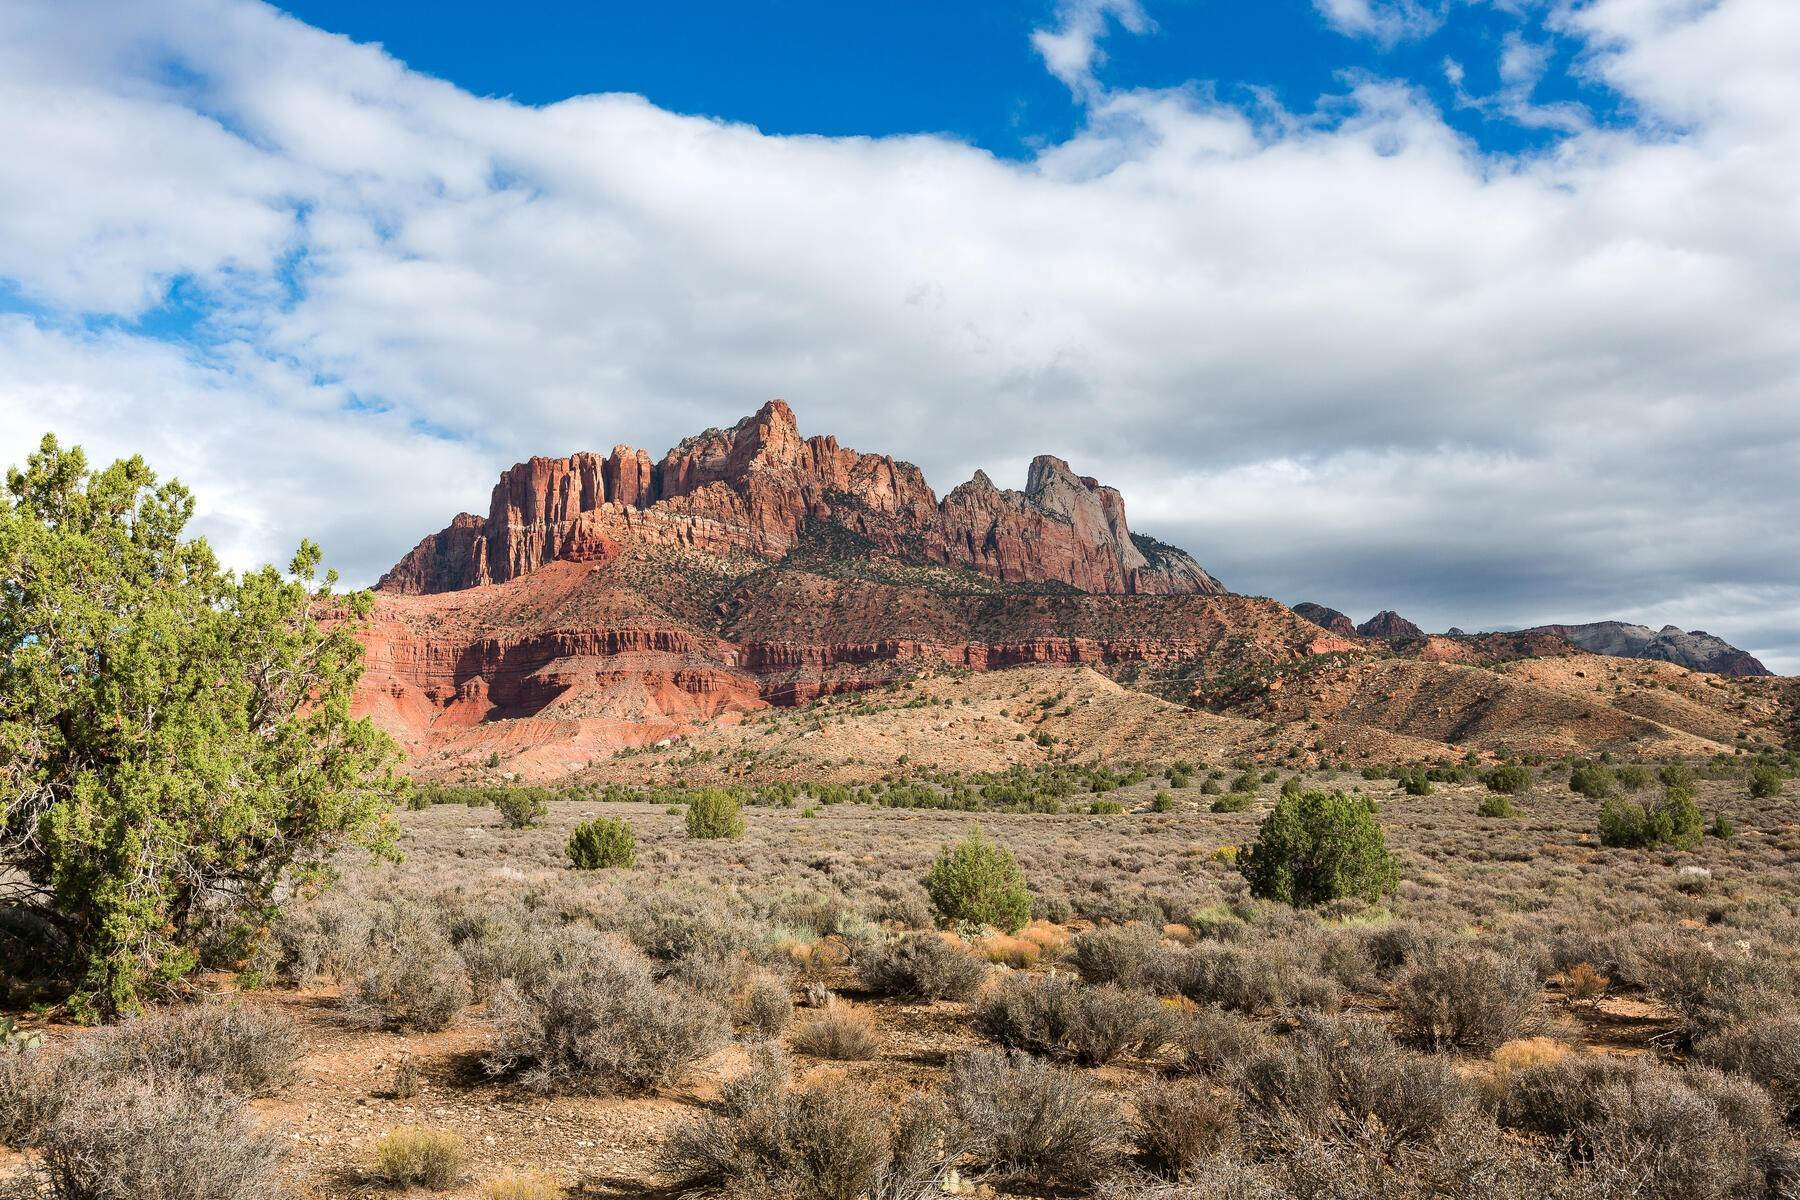 Land for Sale at Back Your Home Up To Zion National Park 2530 Anasazi Way, Lot 61 Springdale, Utah 84767 United States